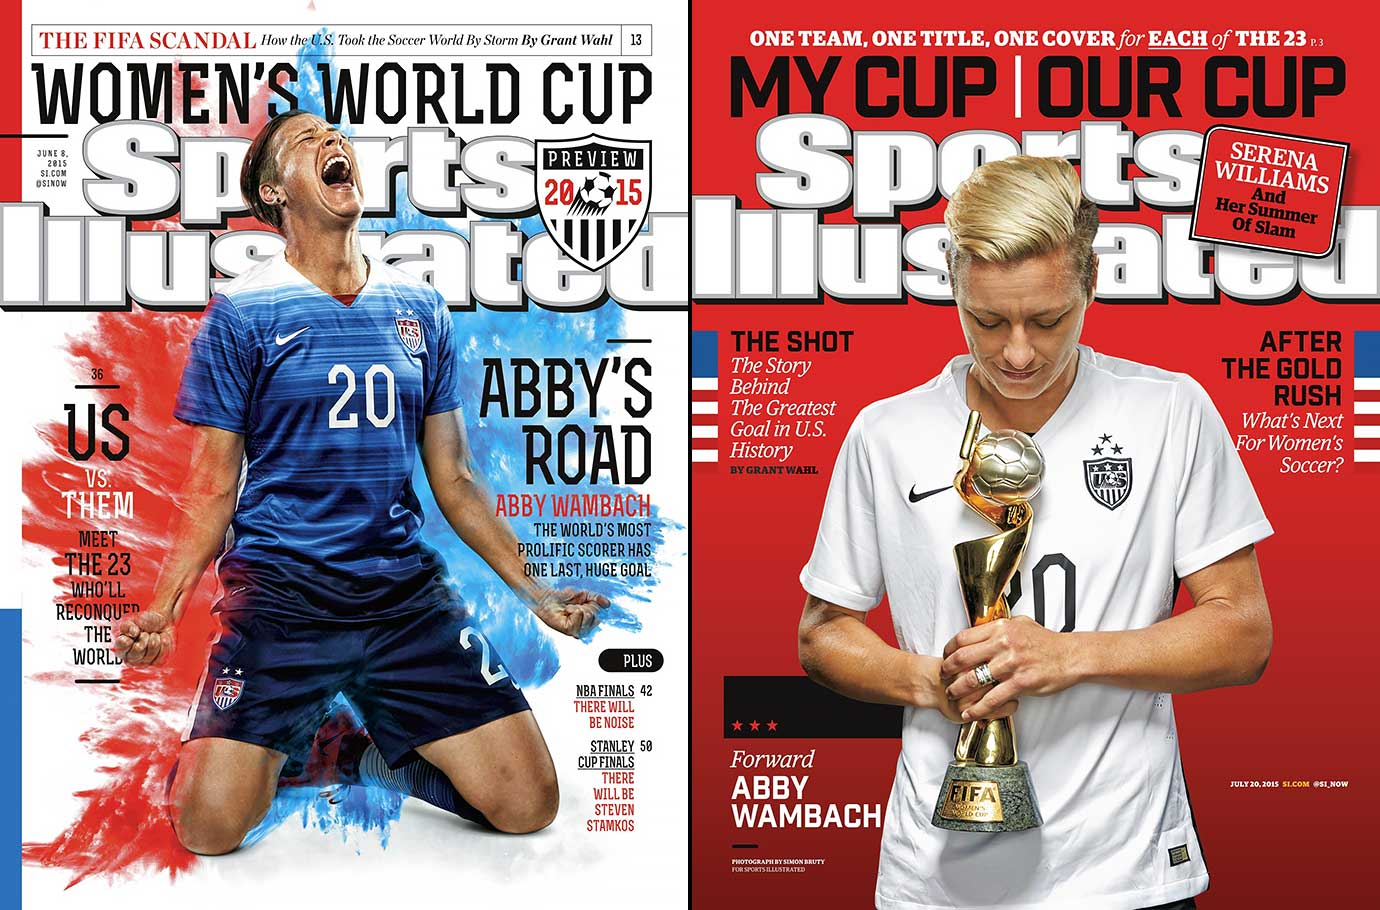 Wambach, 35, is the winner of two Olympic gold medals, to go along with her World Cup title from the summer. She scored the game-winning header of the 2004 Olympic final against Brazil, and five goals at the 2012 Summer Games in London. Wambach, who finishes her career as America's all-time leading scorer in both the World Cup and Olympics, is also the top scorer in international soccer history with 184 goals. Wambach's final game with the USWNT will be on Dec. 16 in New Orleans.